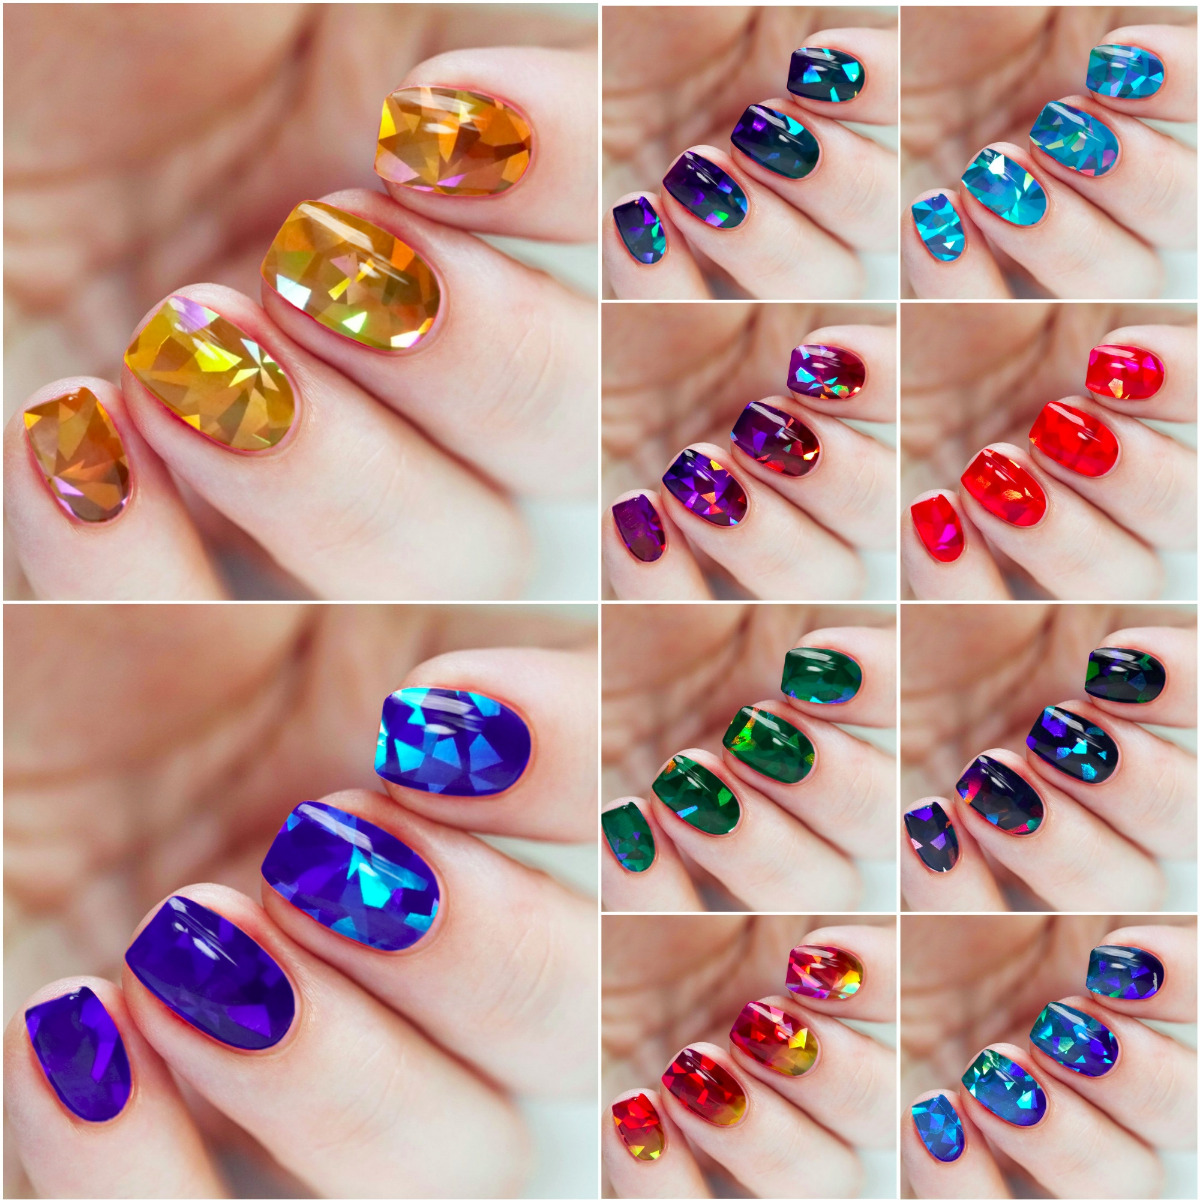 13 X Broken Glass Holographic Nail Art Foil Decoration Wrap Transfer